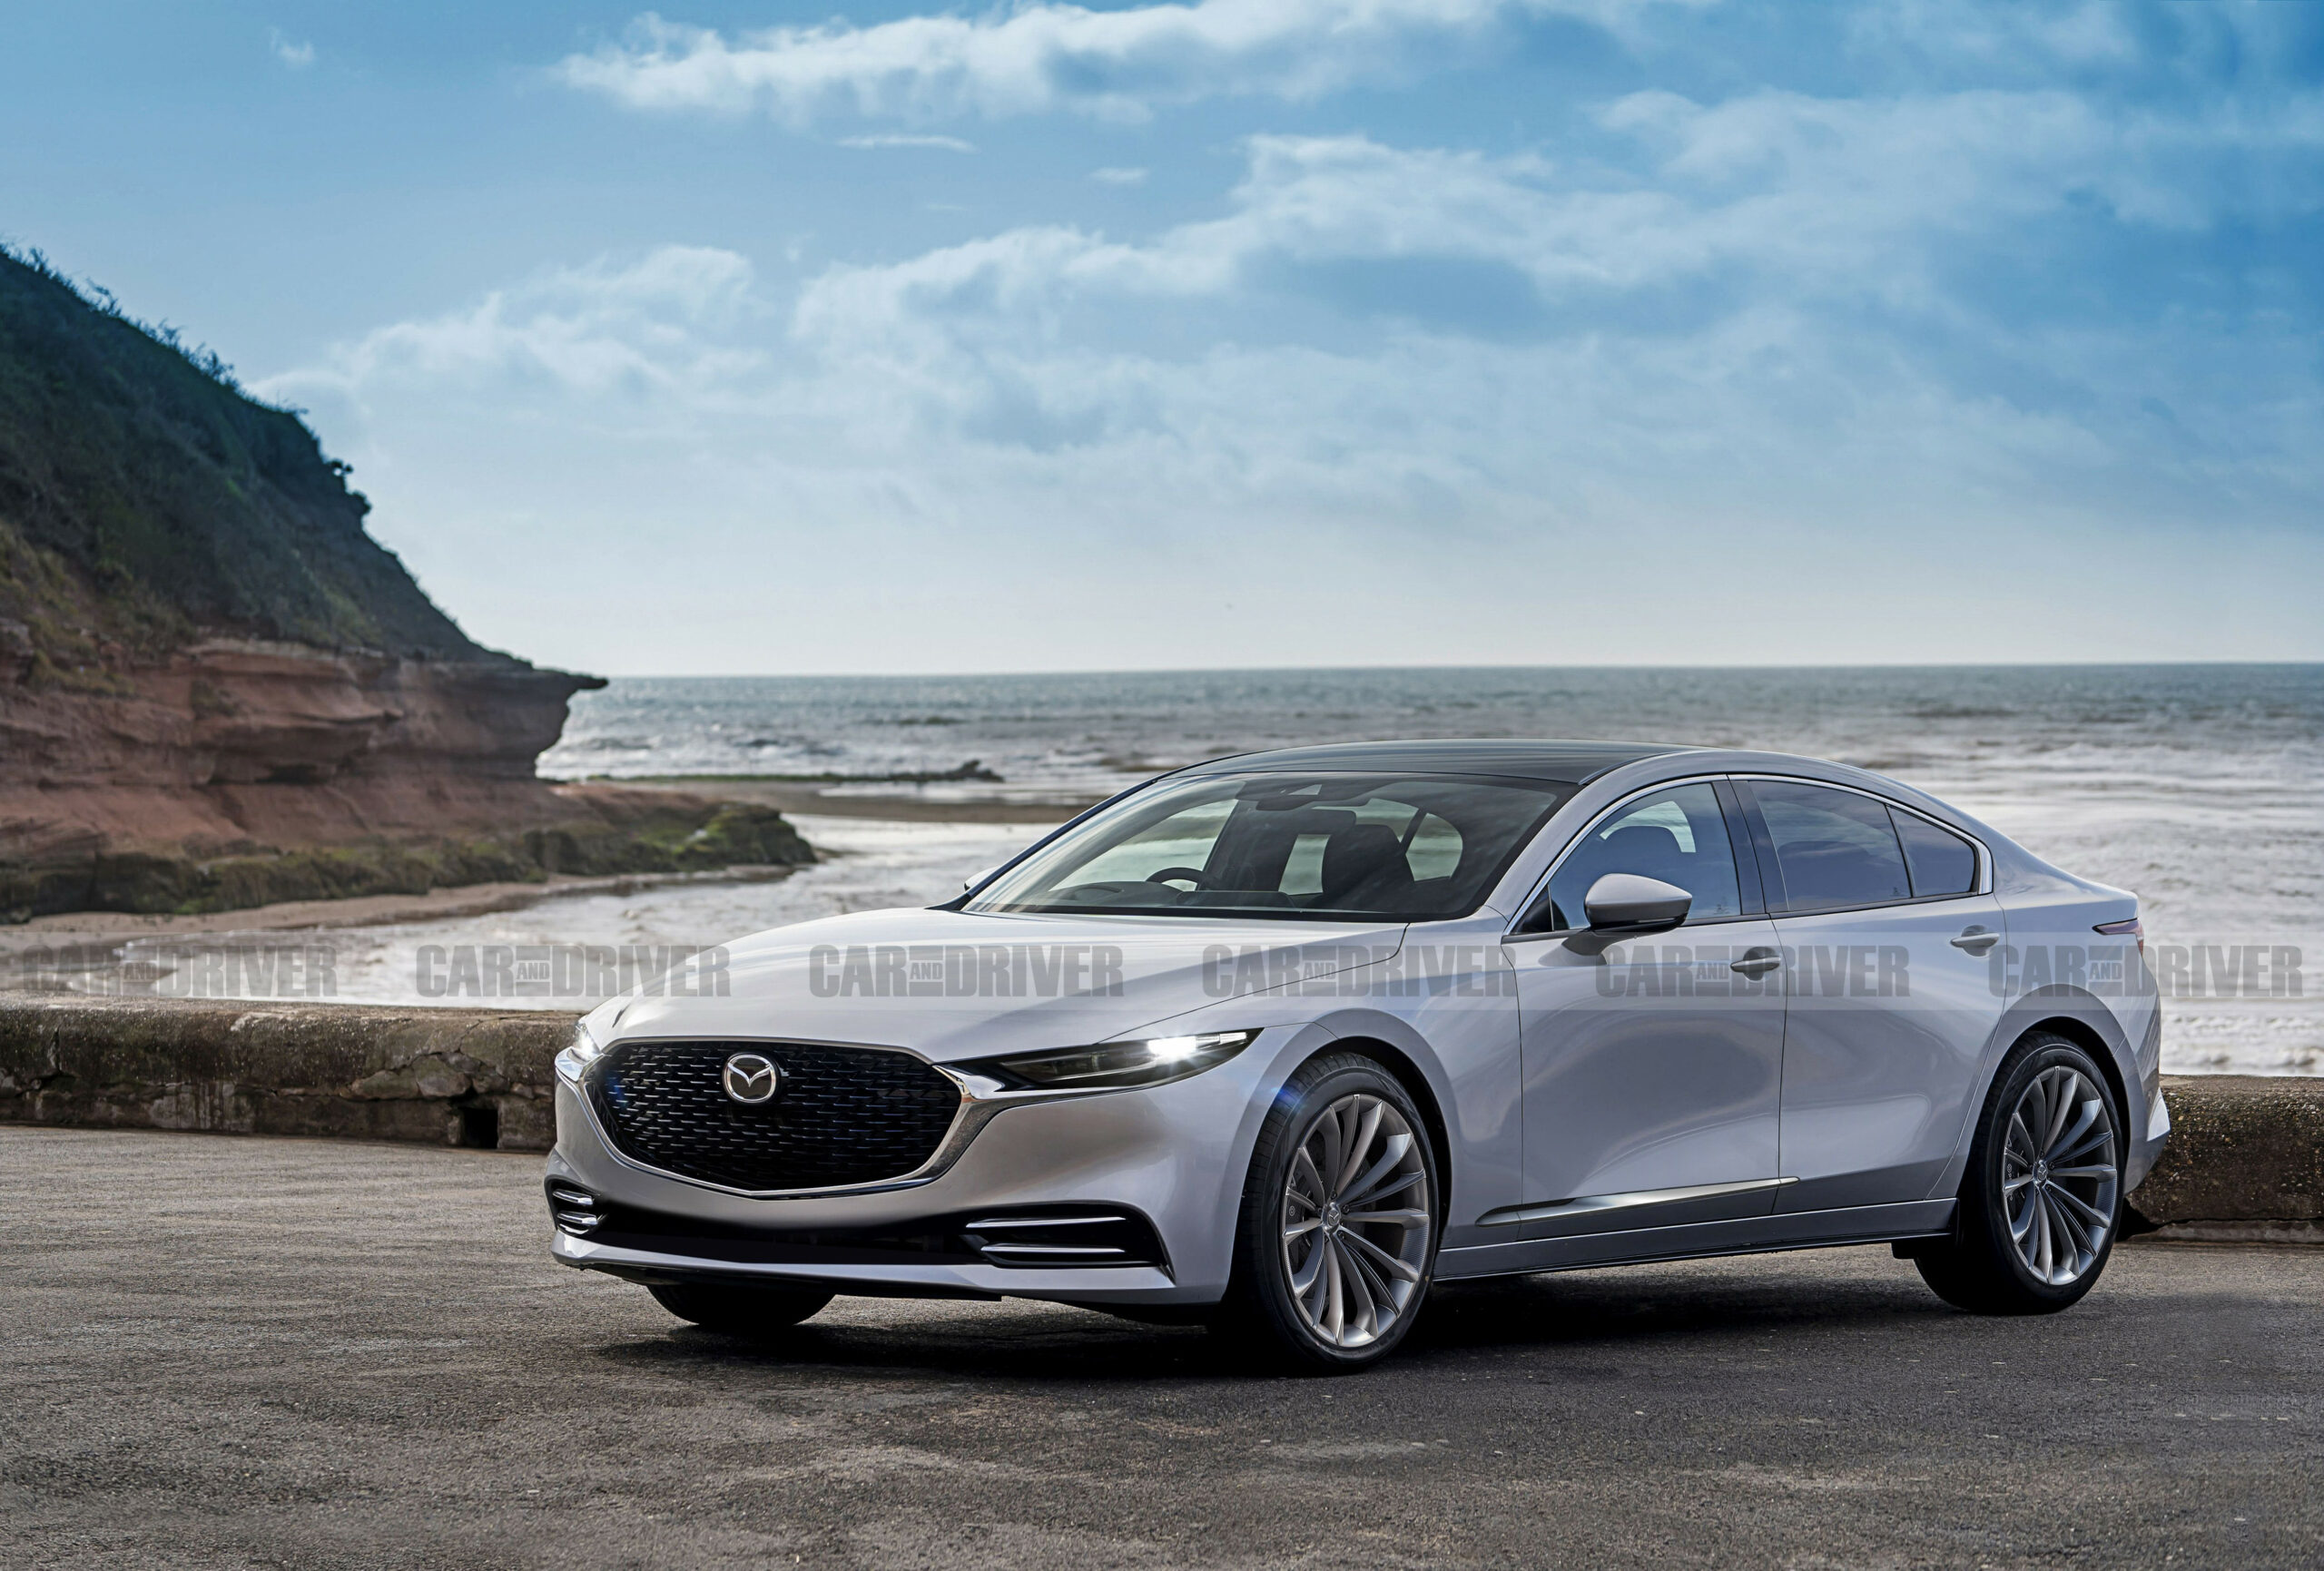 New Model and Performance 2022 Mazda CX-9s